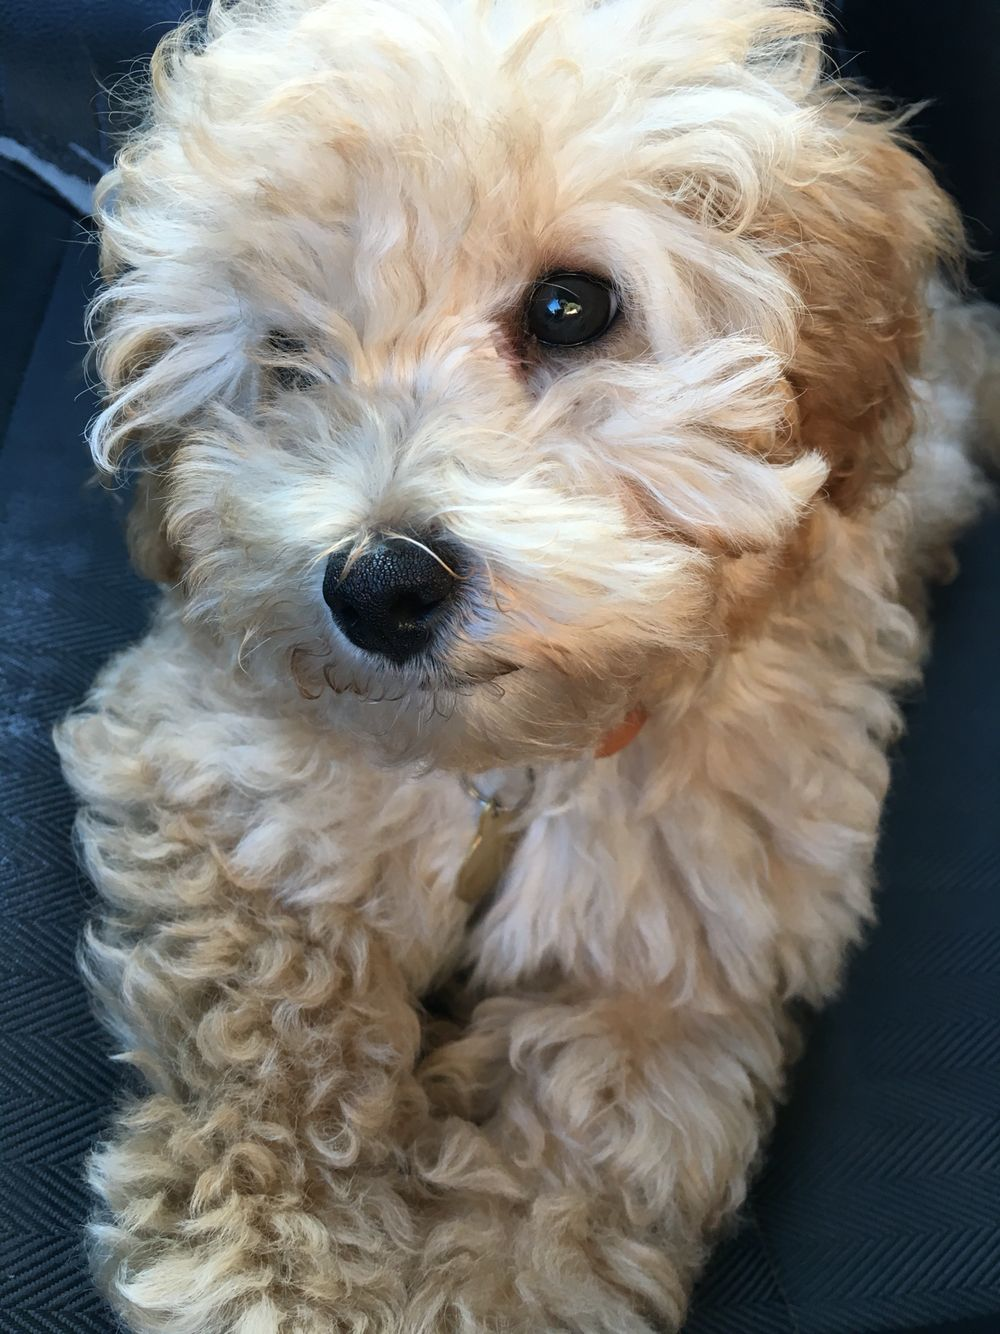 Jackapoo Puppy Poodle Mix Poodle Mix Dog Breeds Puppies